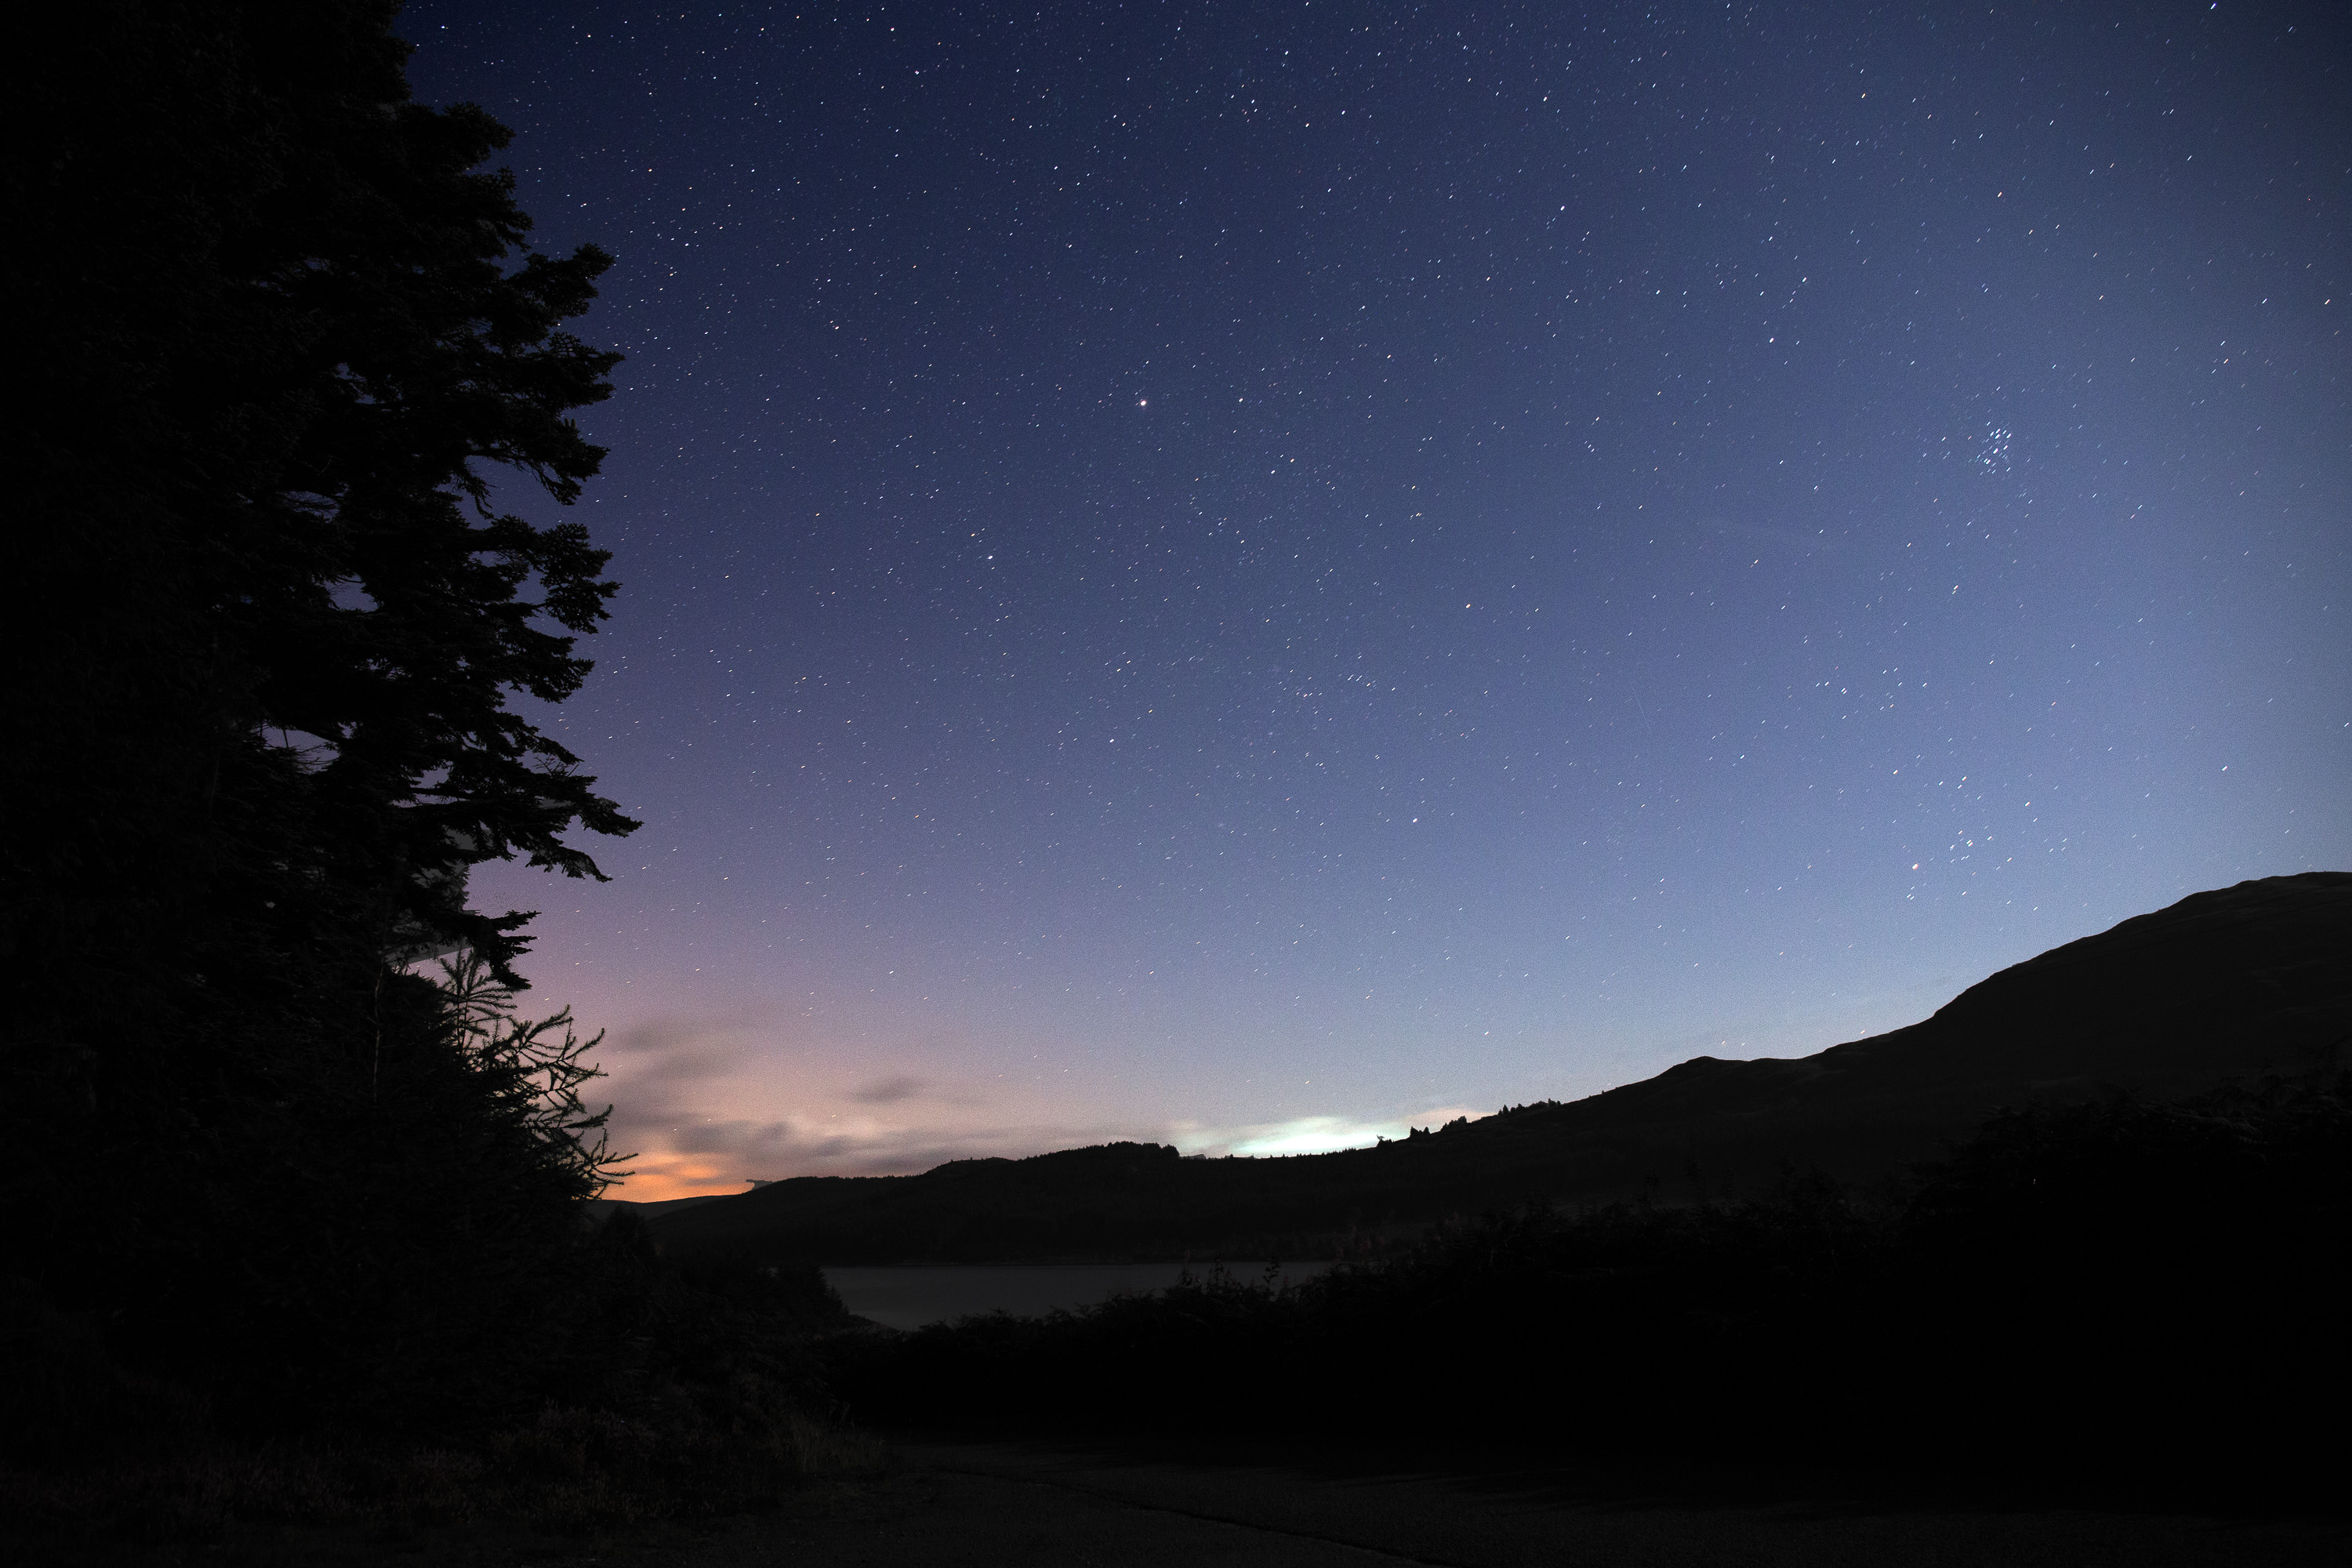 Photography Experiences - Astrophotography Taster